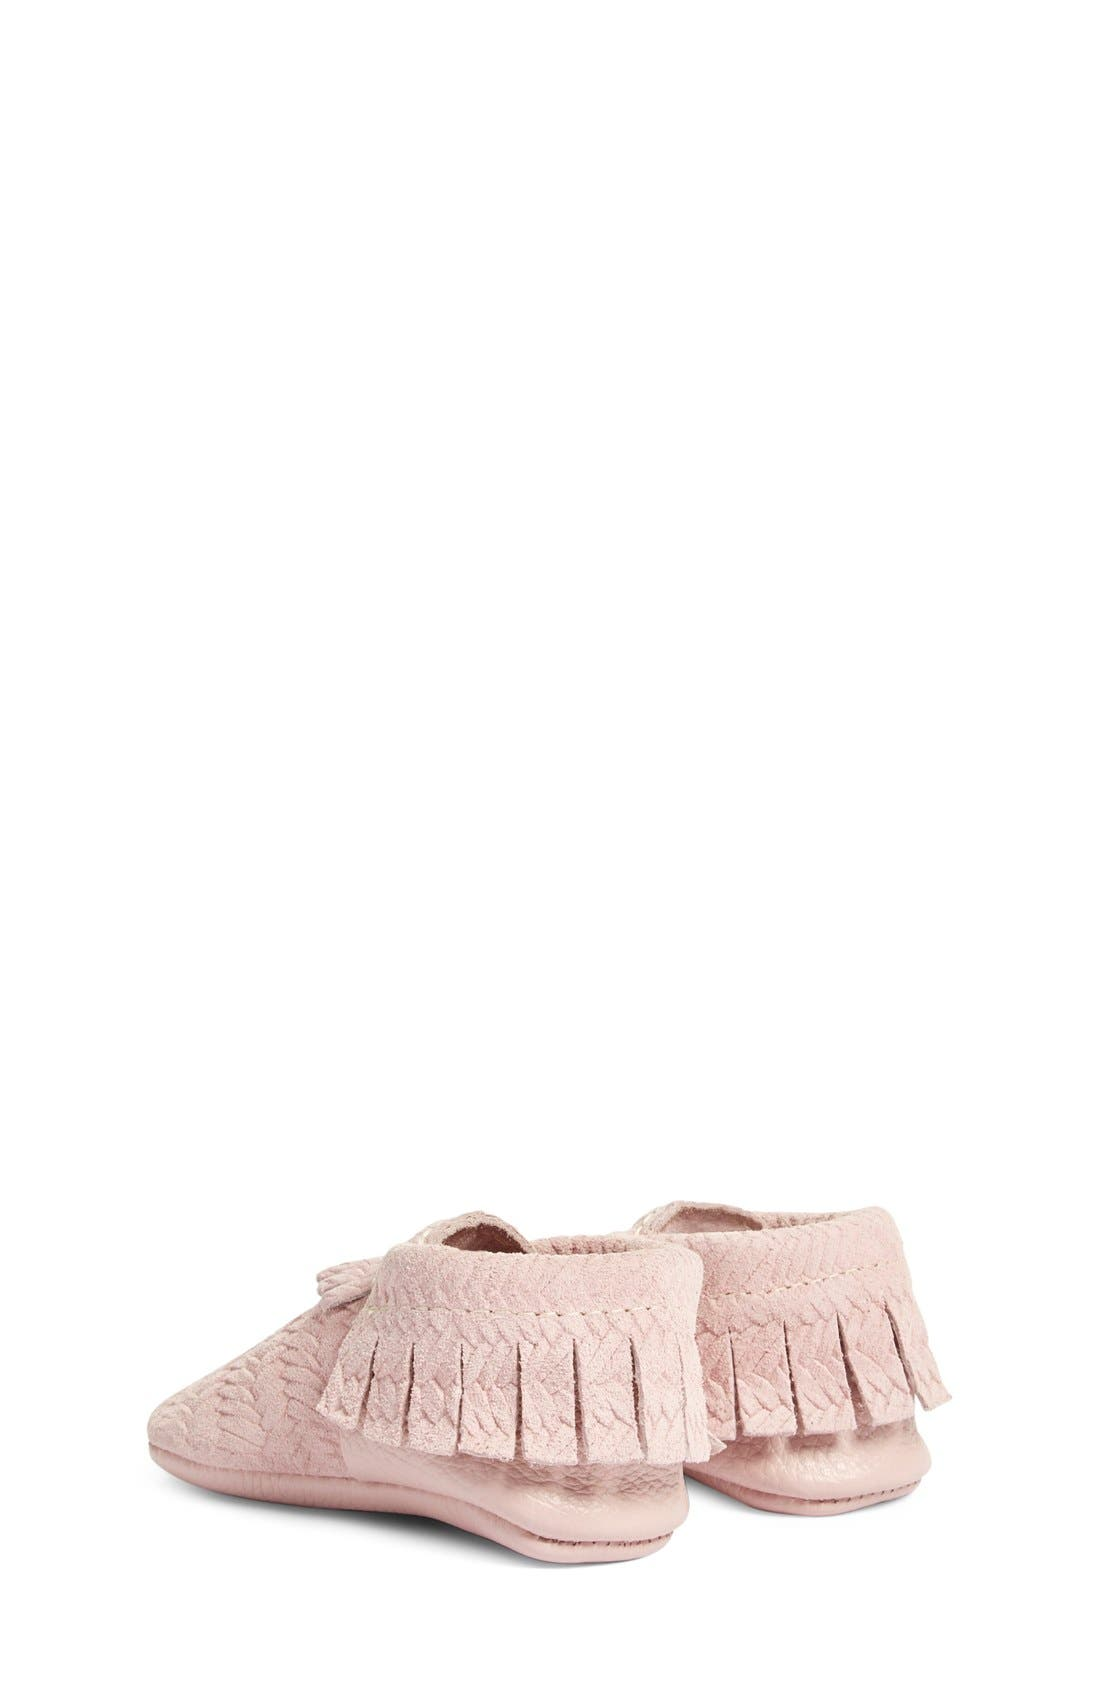 'Cardigan' Woven Leather Moccasin,                             Alternate thumbnail 6, color,                             680